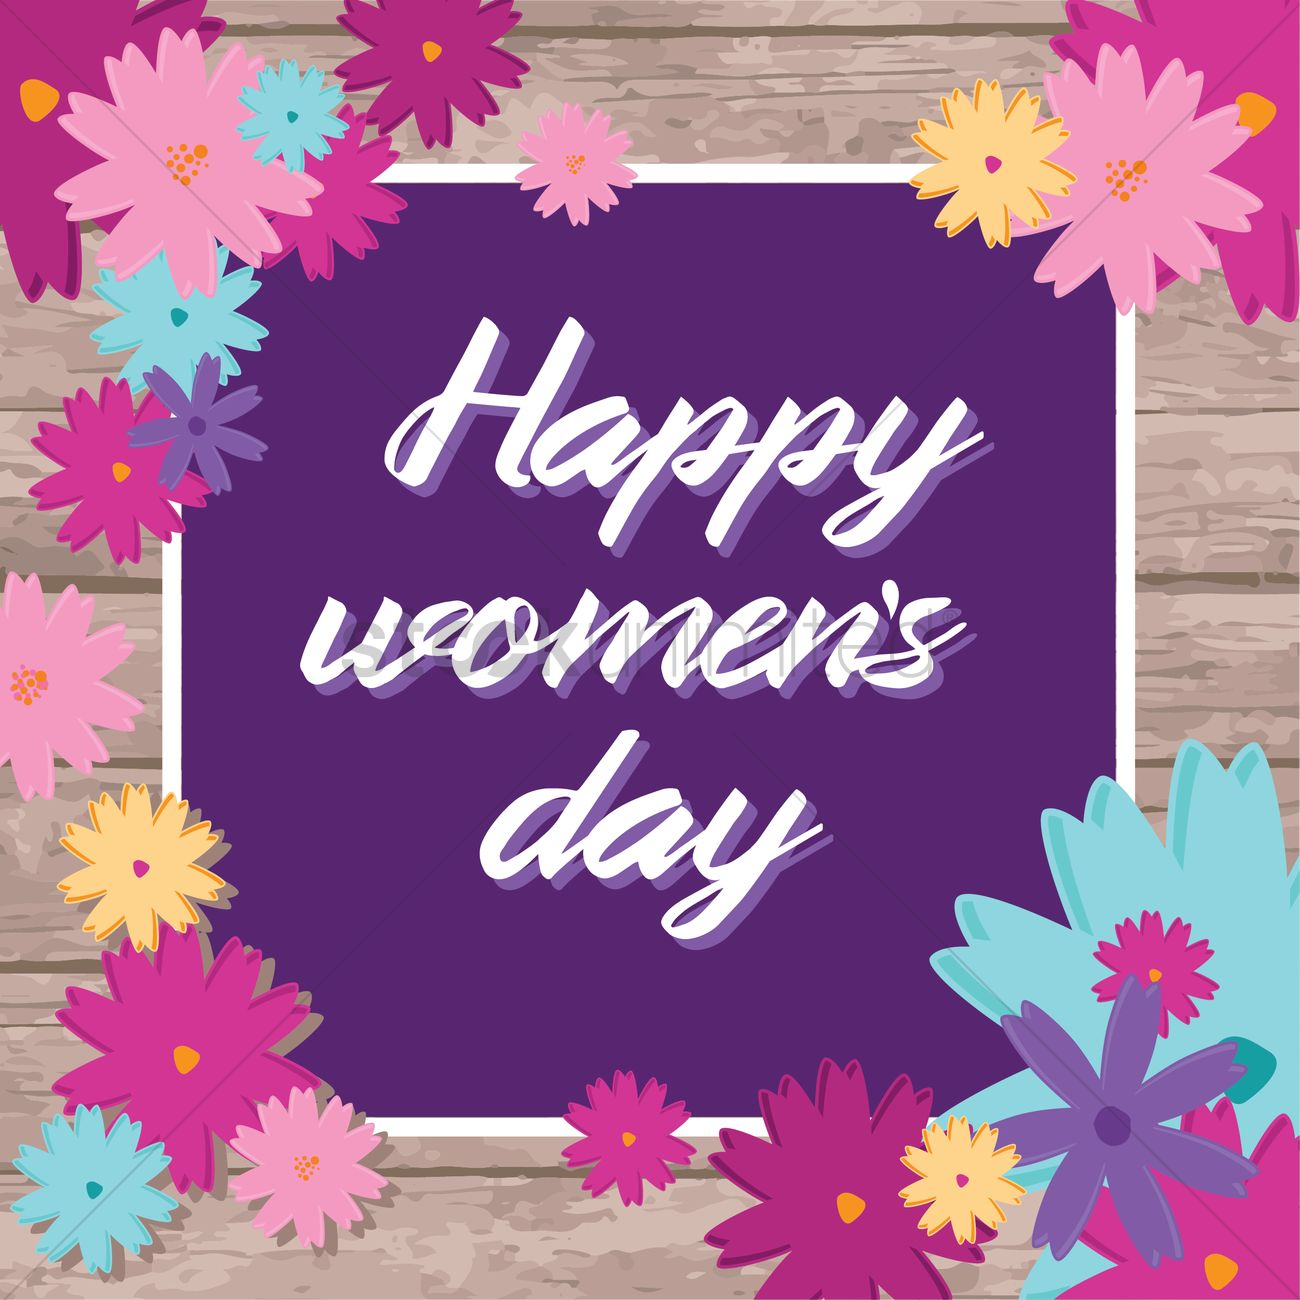 Happy Womens Day Design Vector Image 1990149 Stockunlimited